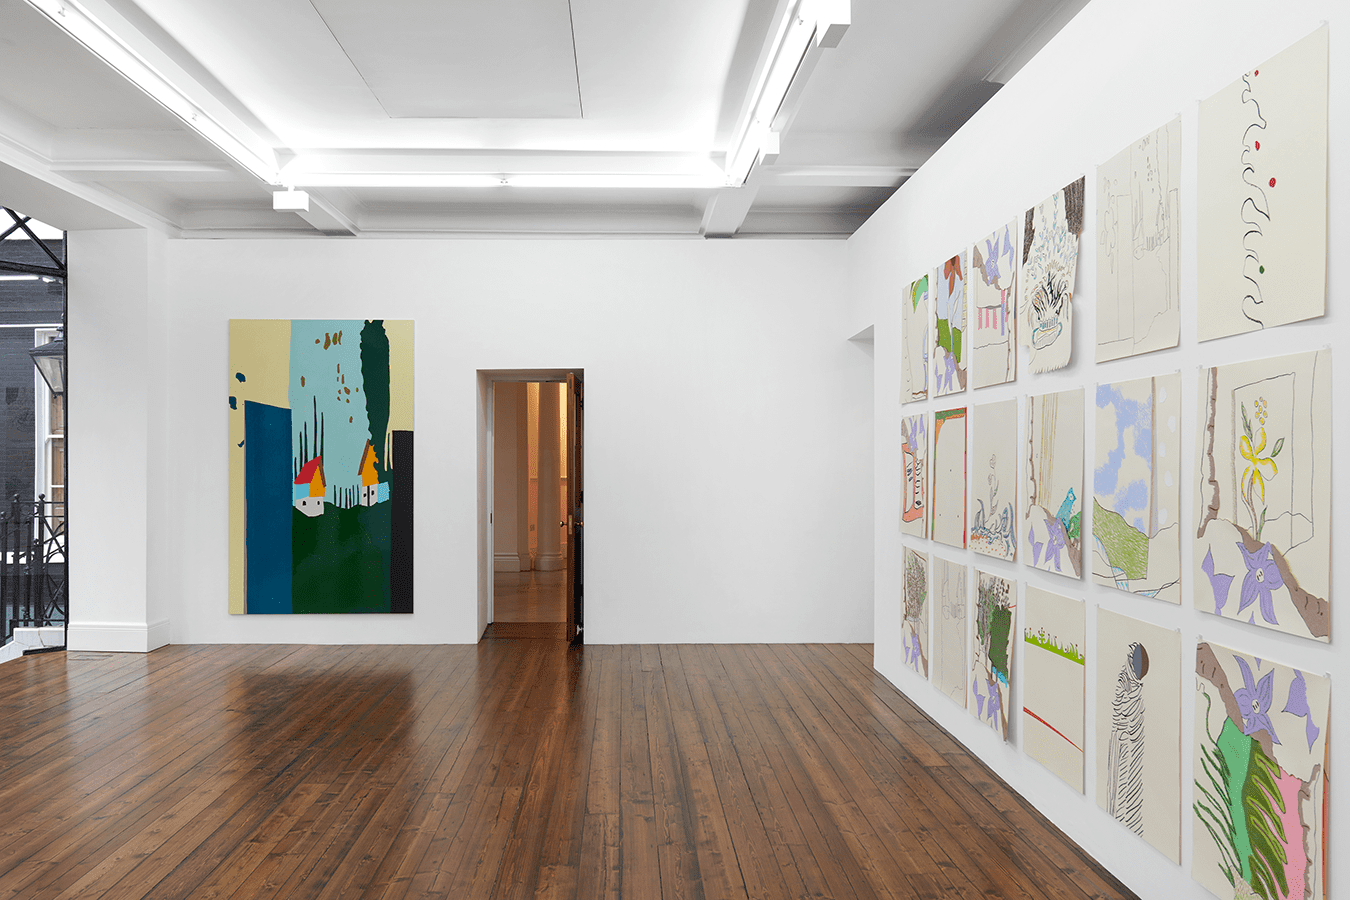 Gary Hume at Sprueth Magers London 2020